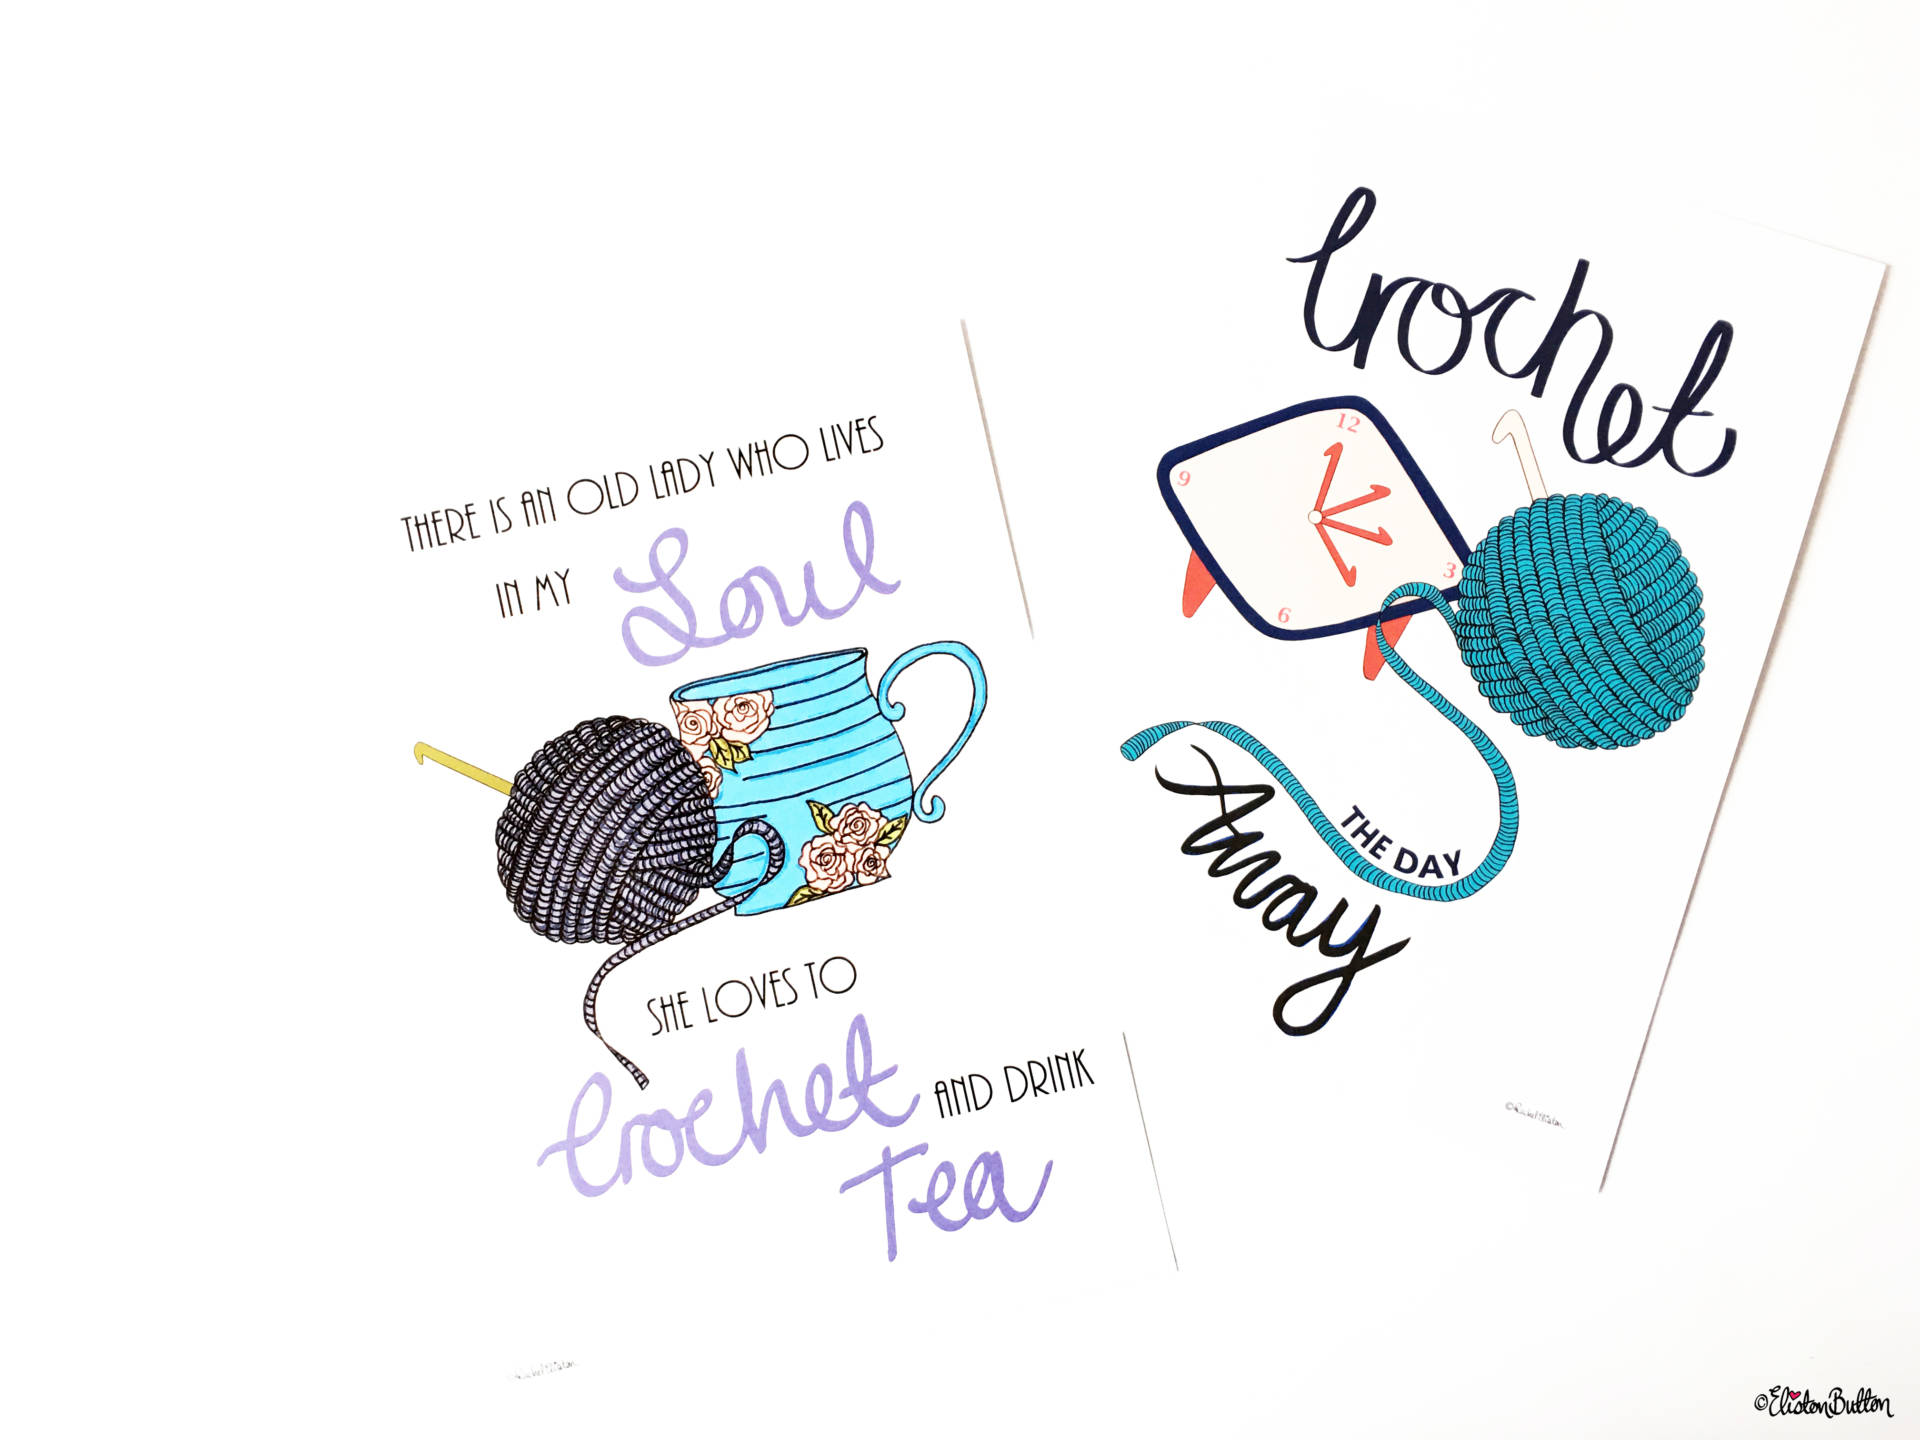 Crochet Illustrated Quote Prints by Eliston Button - Create 30 – No. 3 & 4 – Crochet Illustrated Quote Prints at www.elistonbutton.com - Eliston Button - That Crafty Kid – Art, Design, Craft & Adventure.